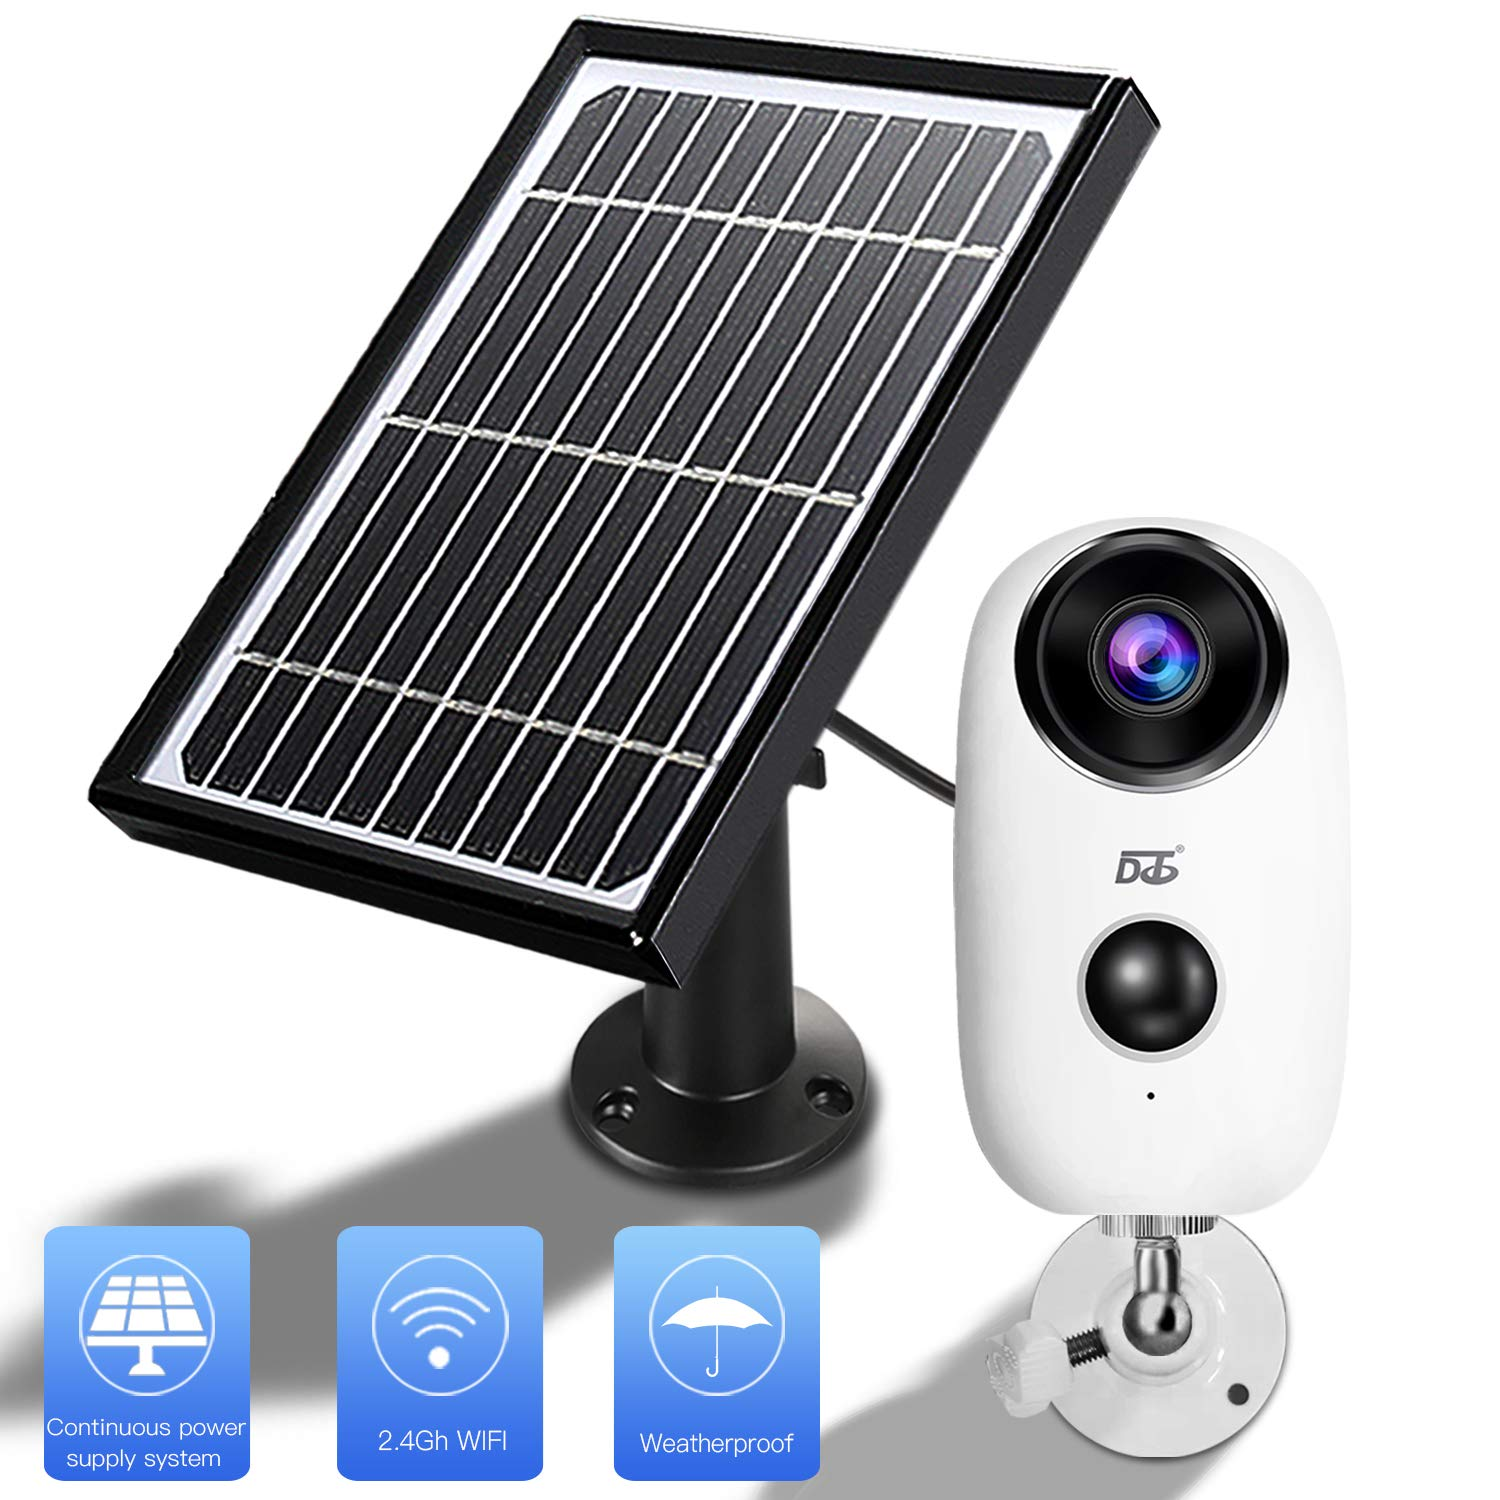 Solar Panel Wireles Camera,1080 HD WiFi Outdoor Security Camera System,Solar Powered,Rechargeable Batteries,2-Way Audio,IP65 Waterproof,Night Vision, App Remote, Long Time PIR Motion Record